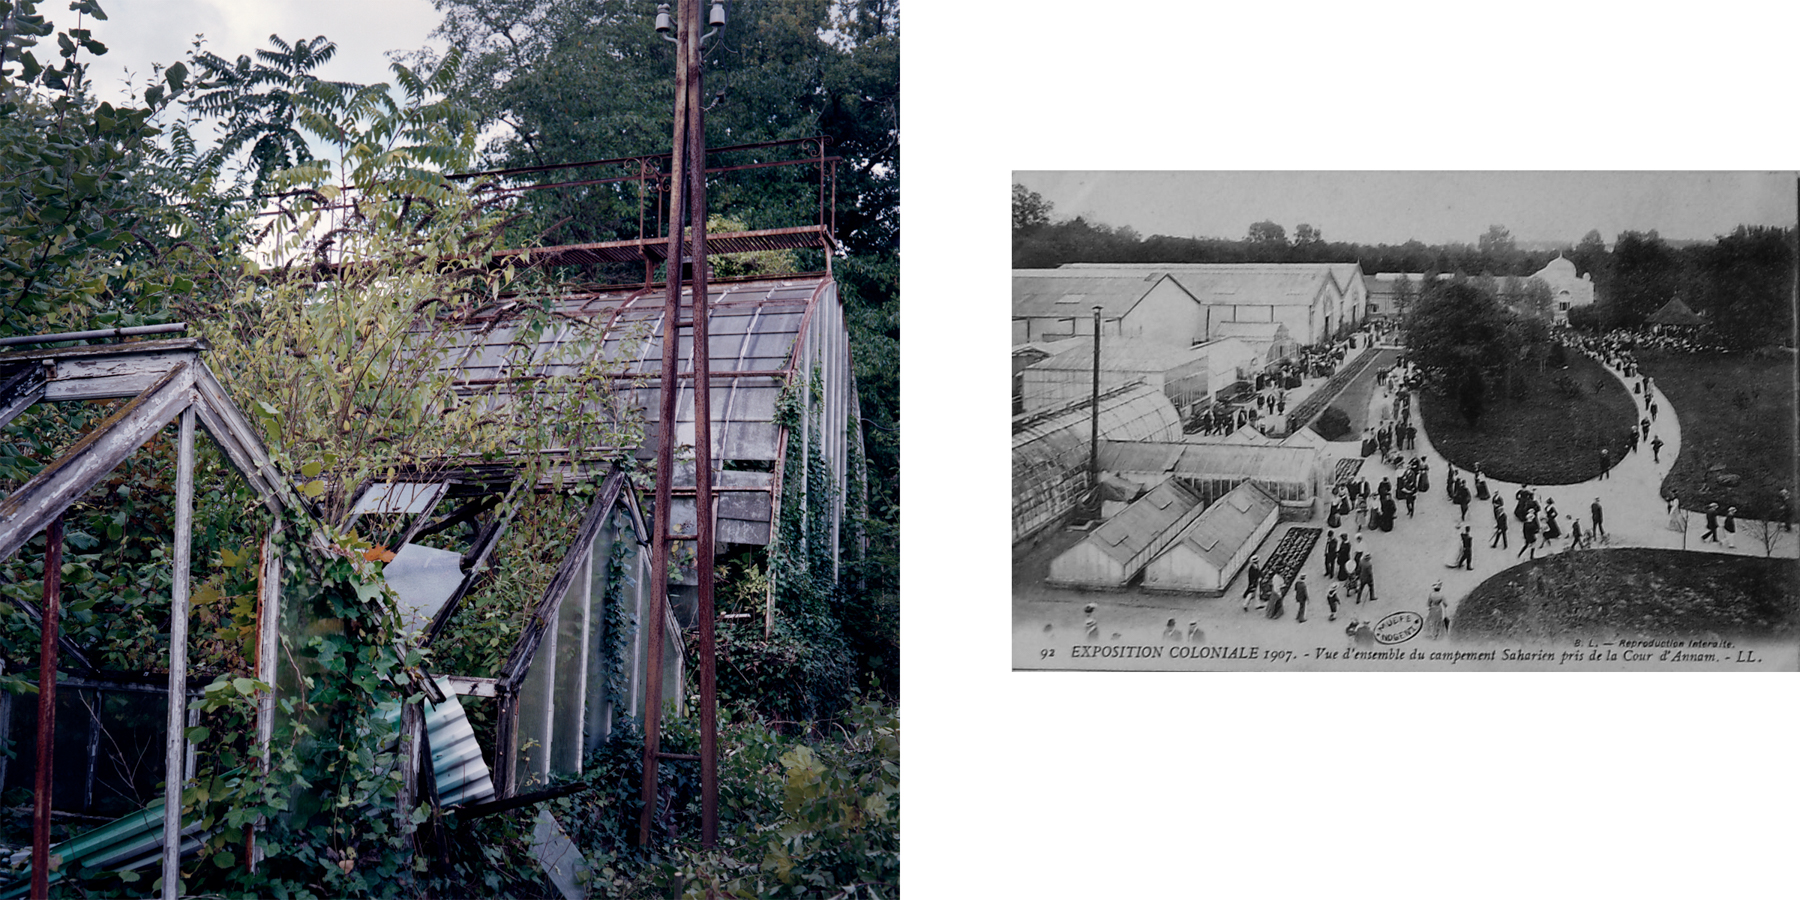 """Left: In July of 1899, the first greenhouse was built in the JAT to experiment with new methods to cultivate colonial crops. After being displayed at the 1900 Paris World's Fair, two more greenhouses were added to the JAT, one for coffee and one for cacao. Right: A historical photo from the 1907 colonial exposition depicts the greenhouses and part of the """"Saharan encampment."""" Nogent-sur-Marne, France."""